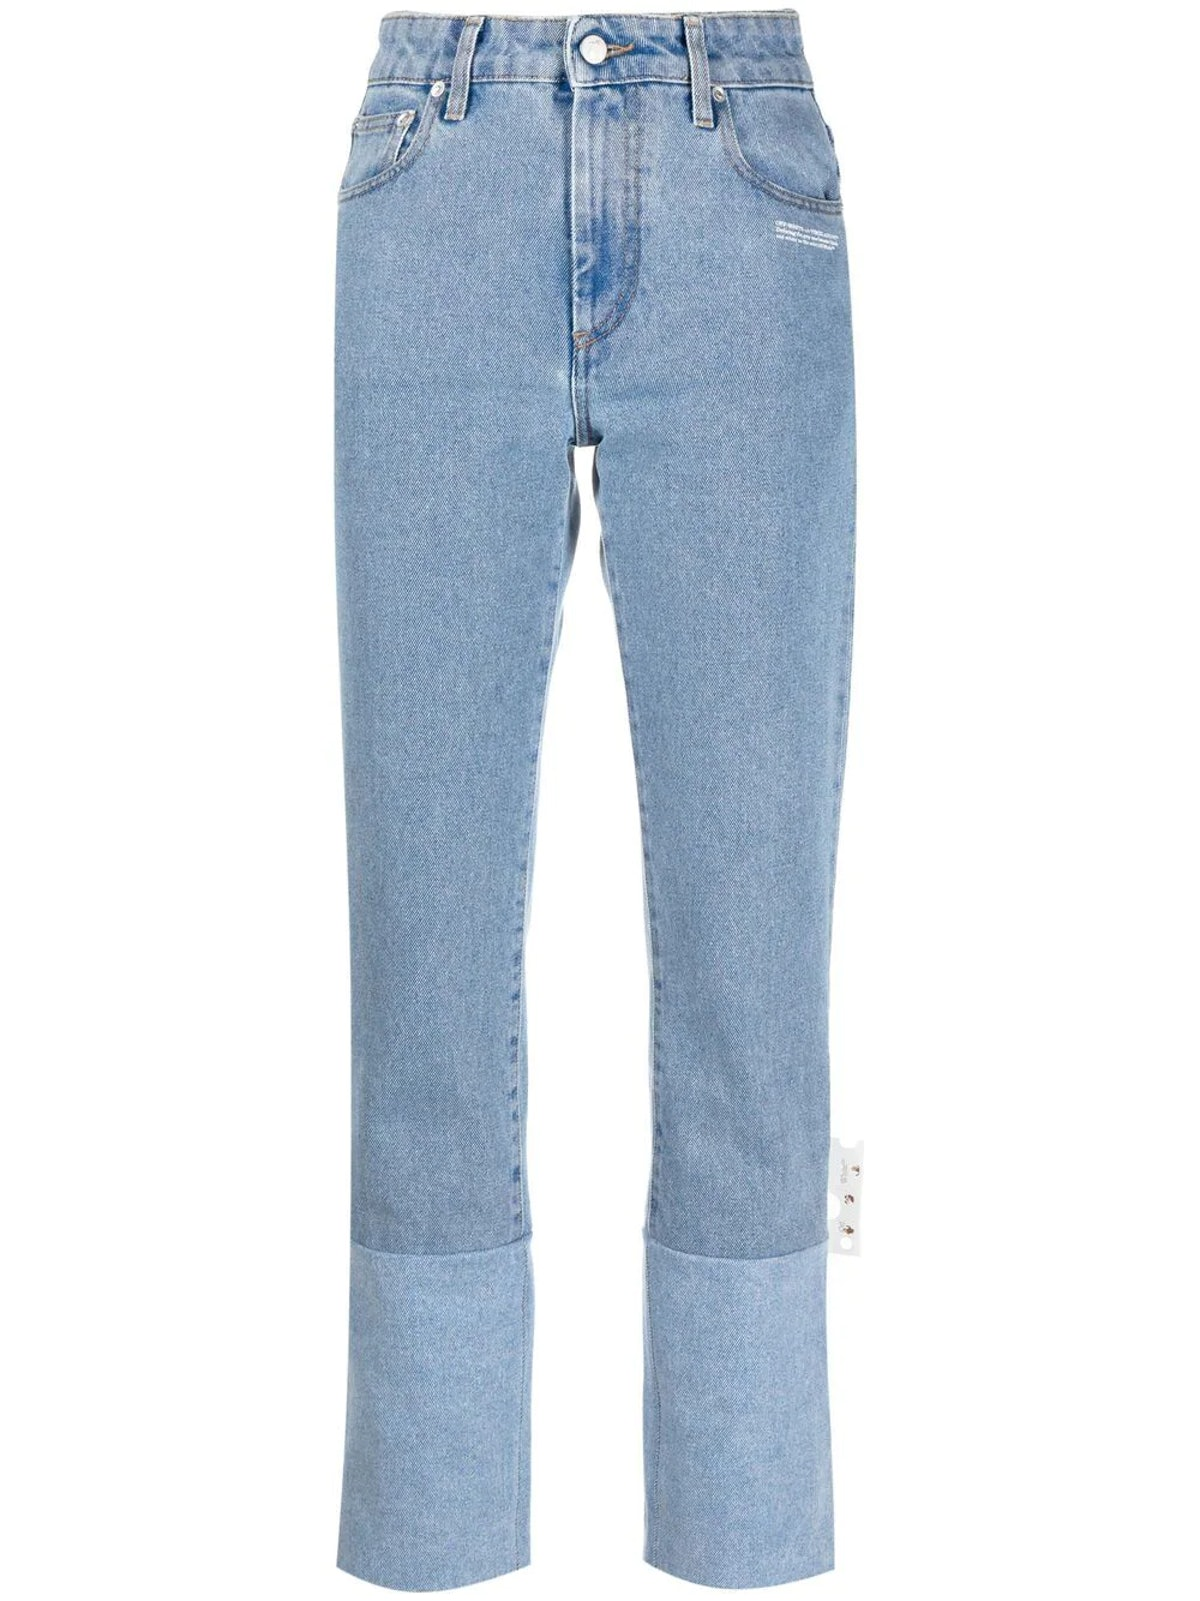 Off-White high-rise straight leg cuff jeans, available to shop via Farfetch.